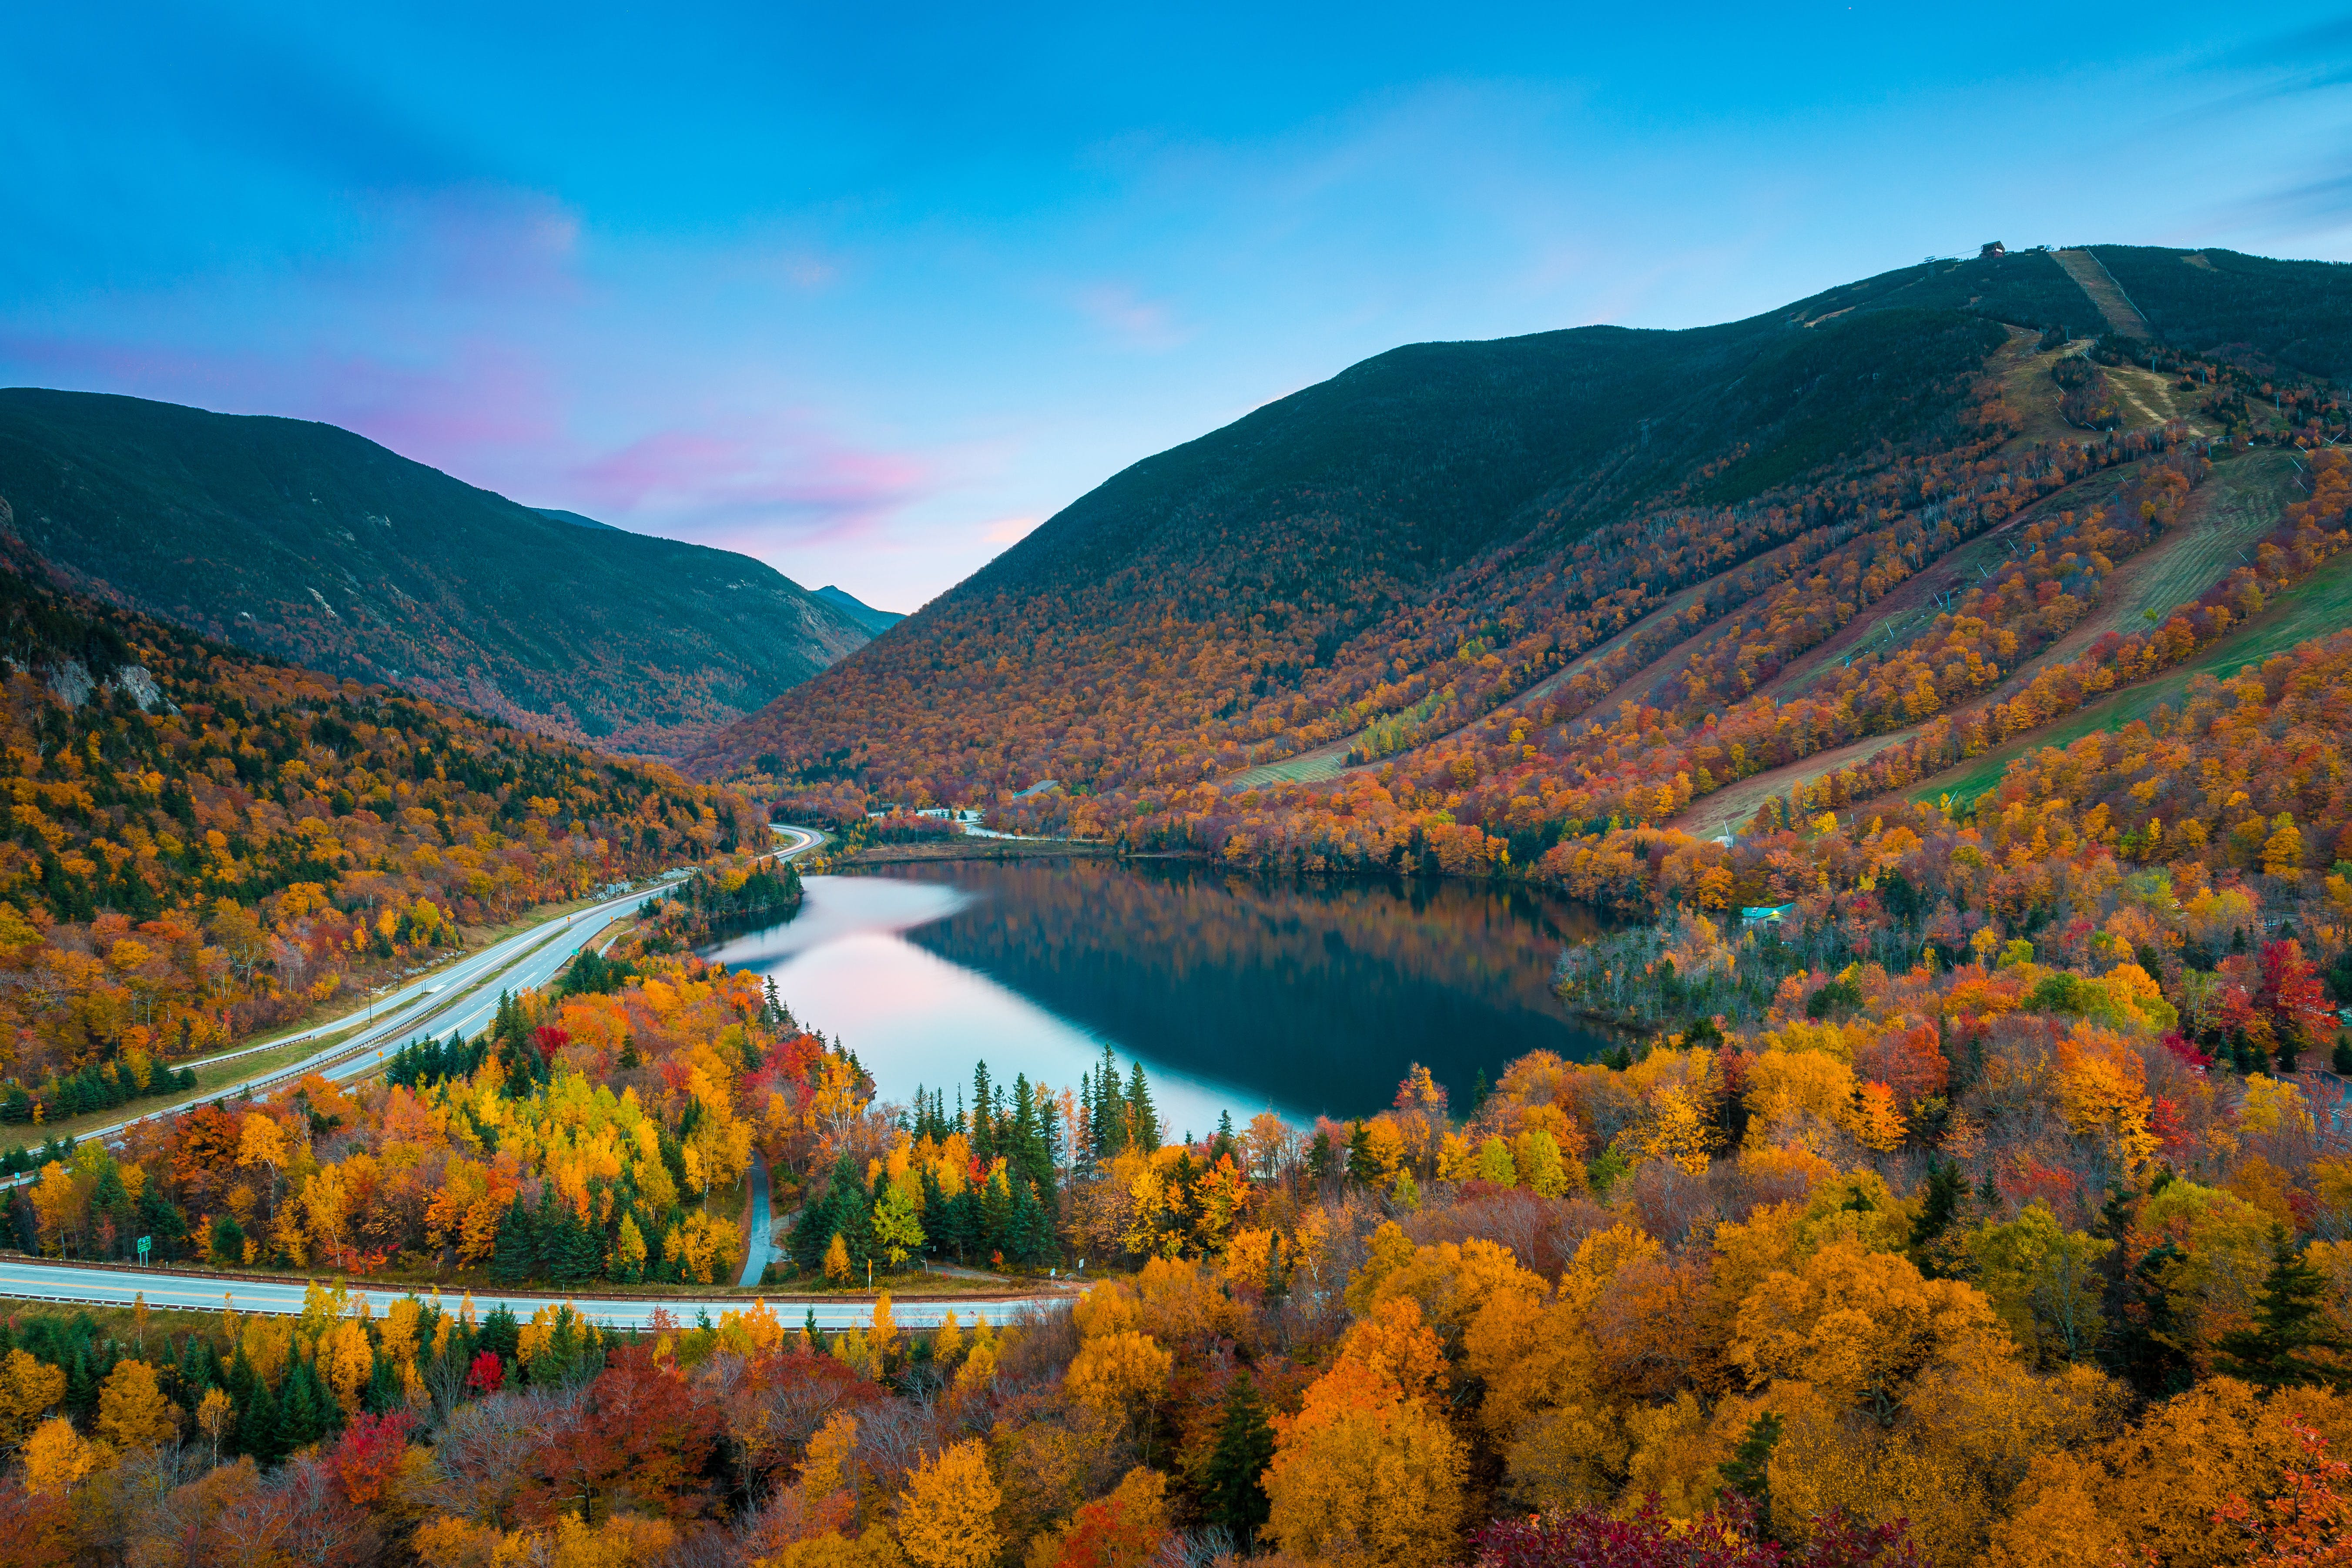 Fall in the Northeast is a colorful site to behold.